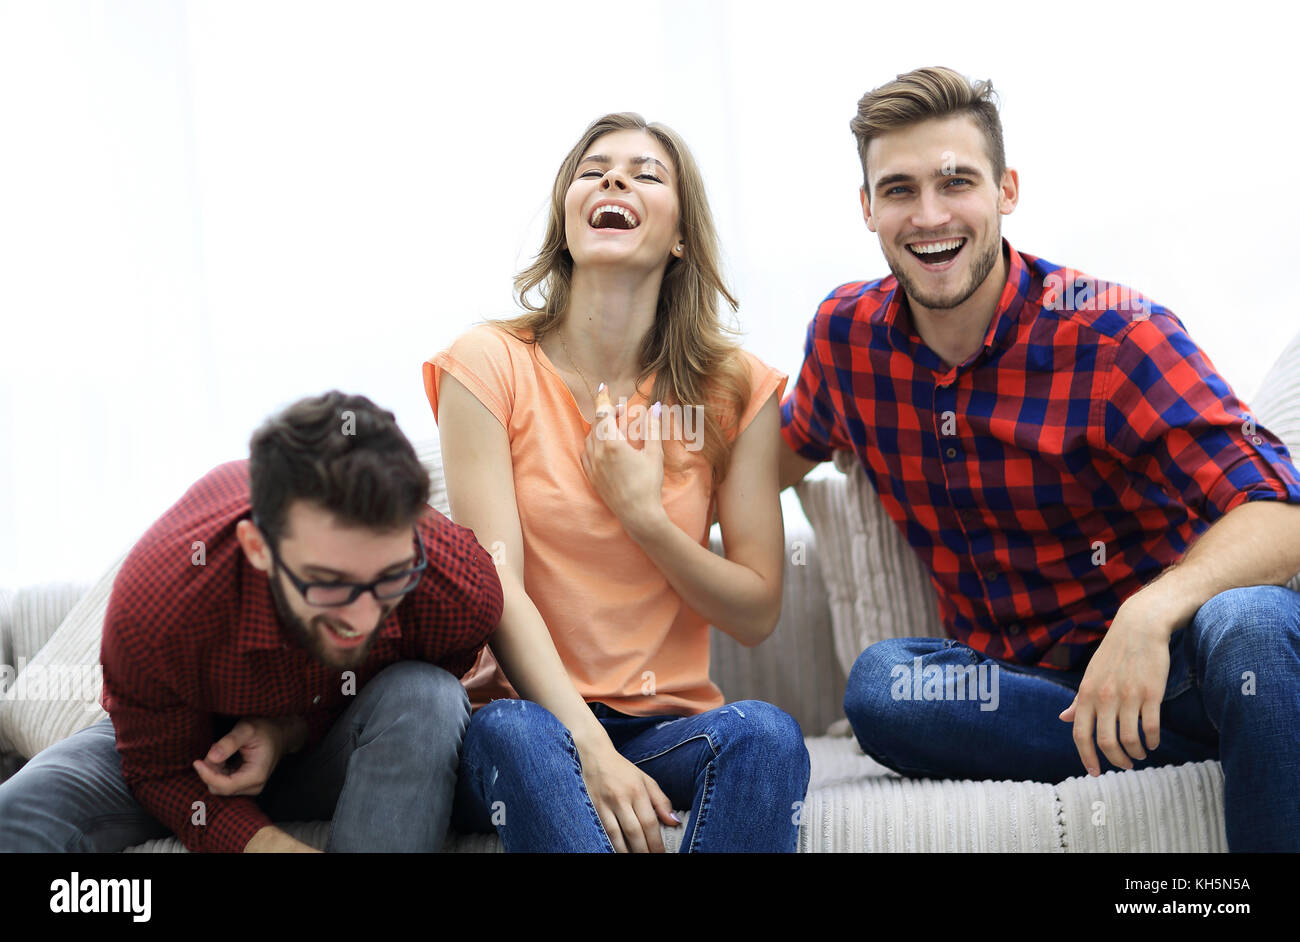 group of young people laughing and sitting on the couch - Stock Image